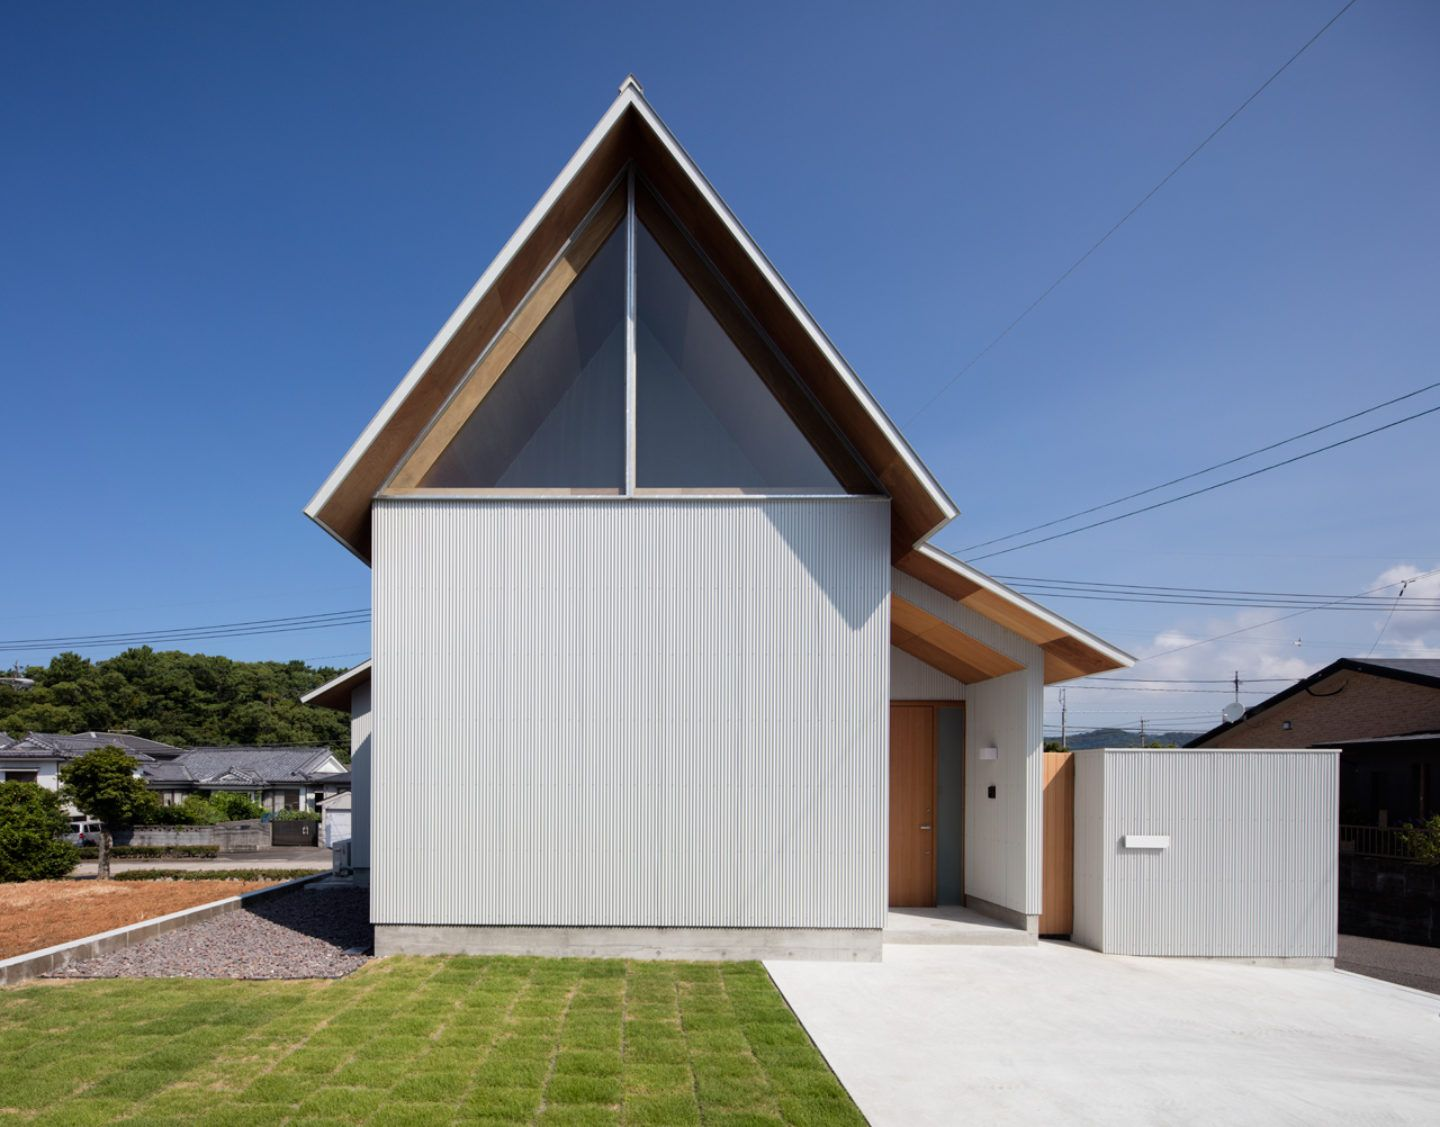 IGNANT-Architecture-YN-Architects-Masumitsu-House-1